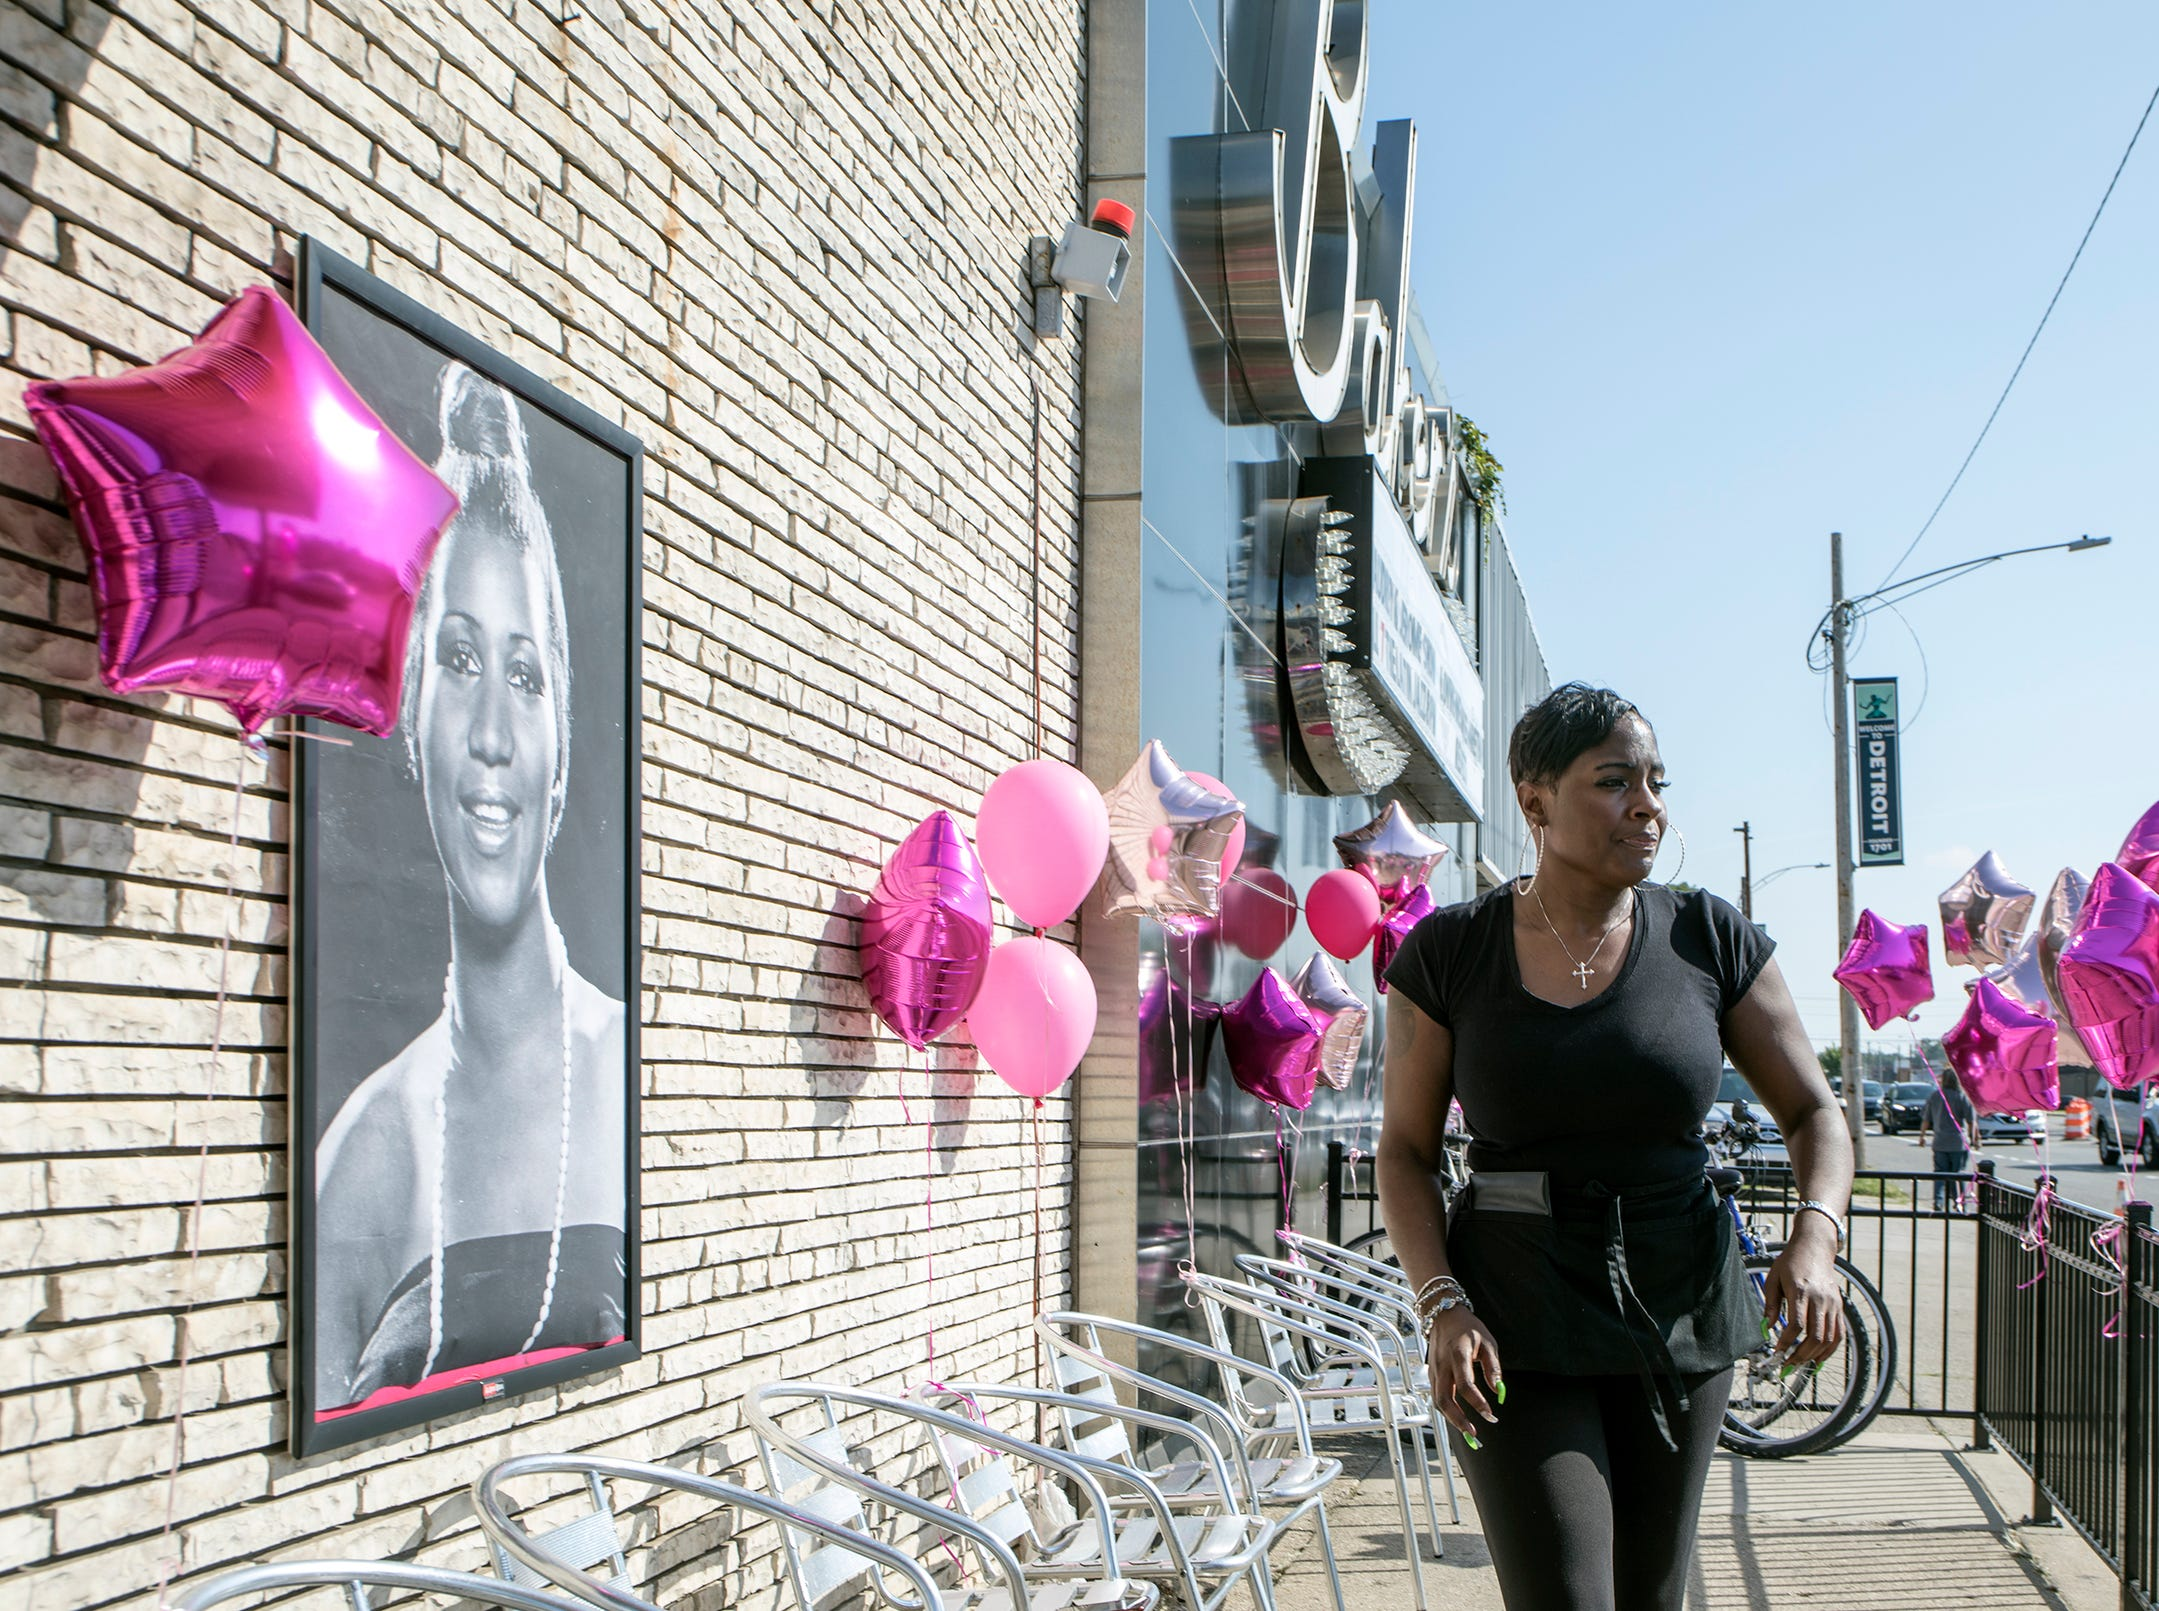 Love Williams, 43, of Detroit finalizes decorations at Baker's Keyboard Lounge in anticipation of Aretha Franklin's funeral to pass by on Livernois Ave. in Detroit, Mich., Friday, August 31, 2018.